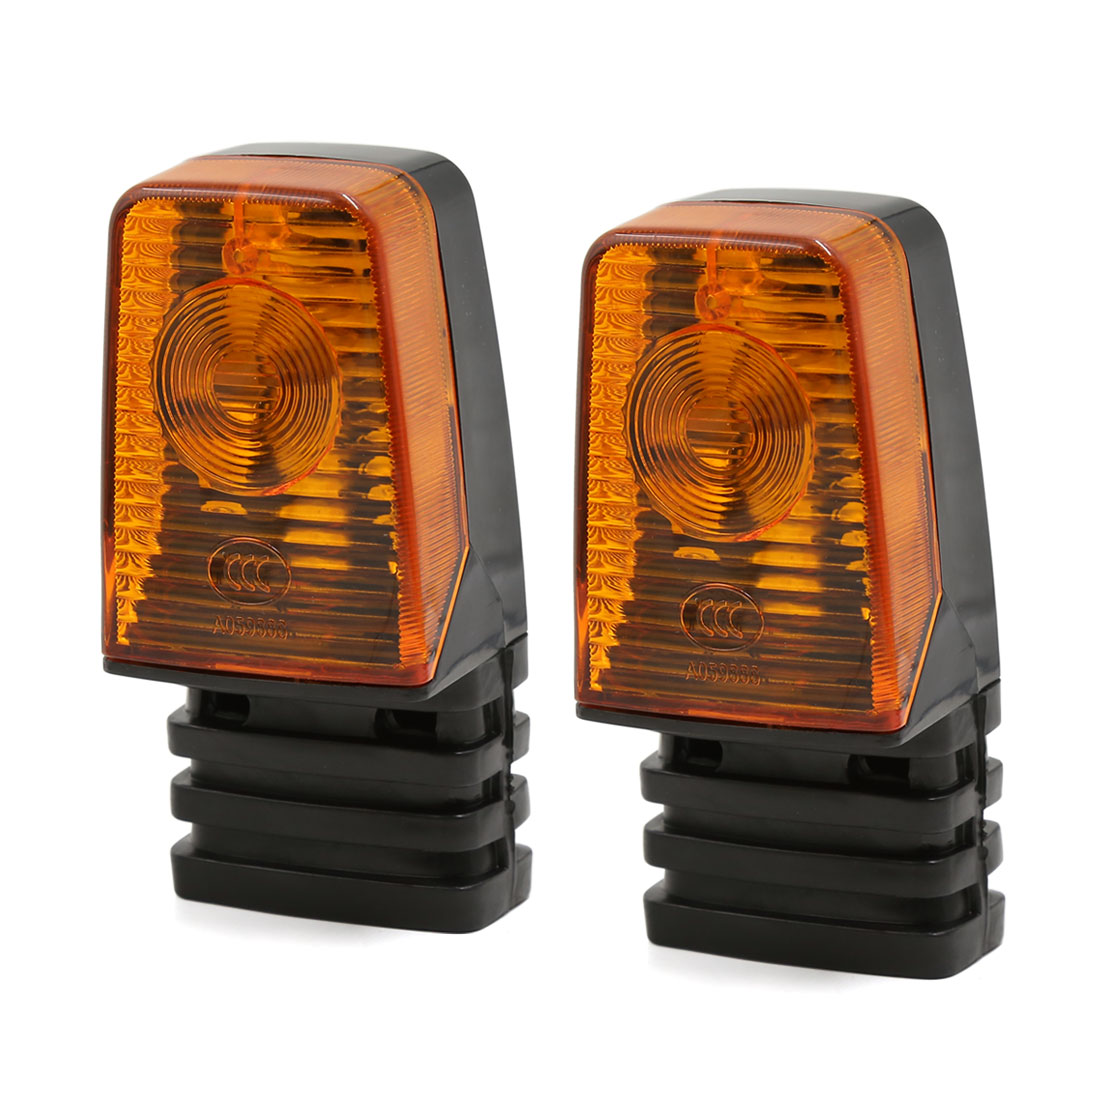 2pcs DC 12V Amber Motorcycle Turn Signal Blinker Light Indicator Lamp for Suzuki